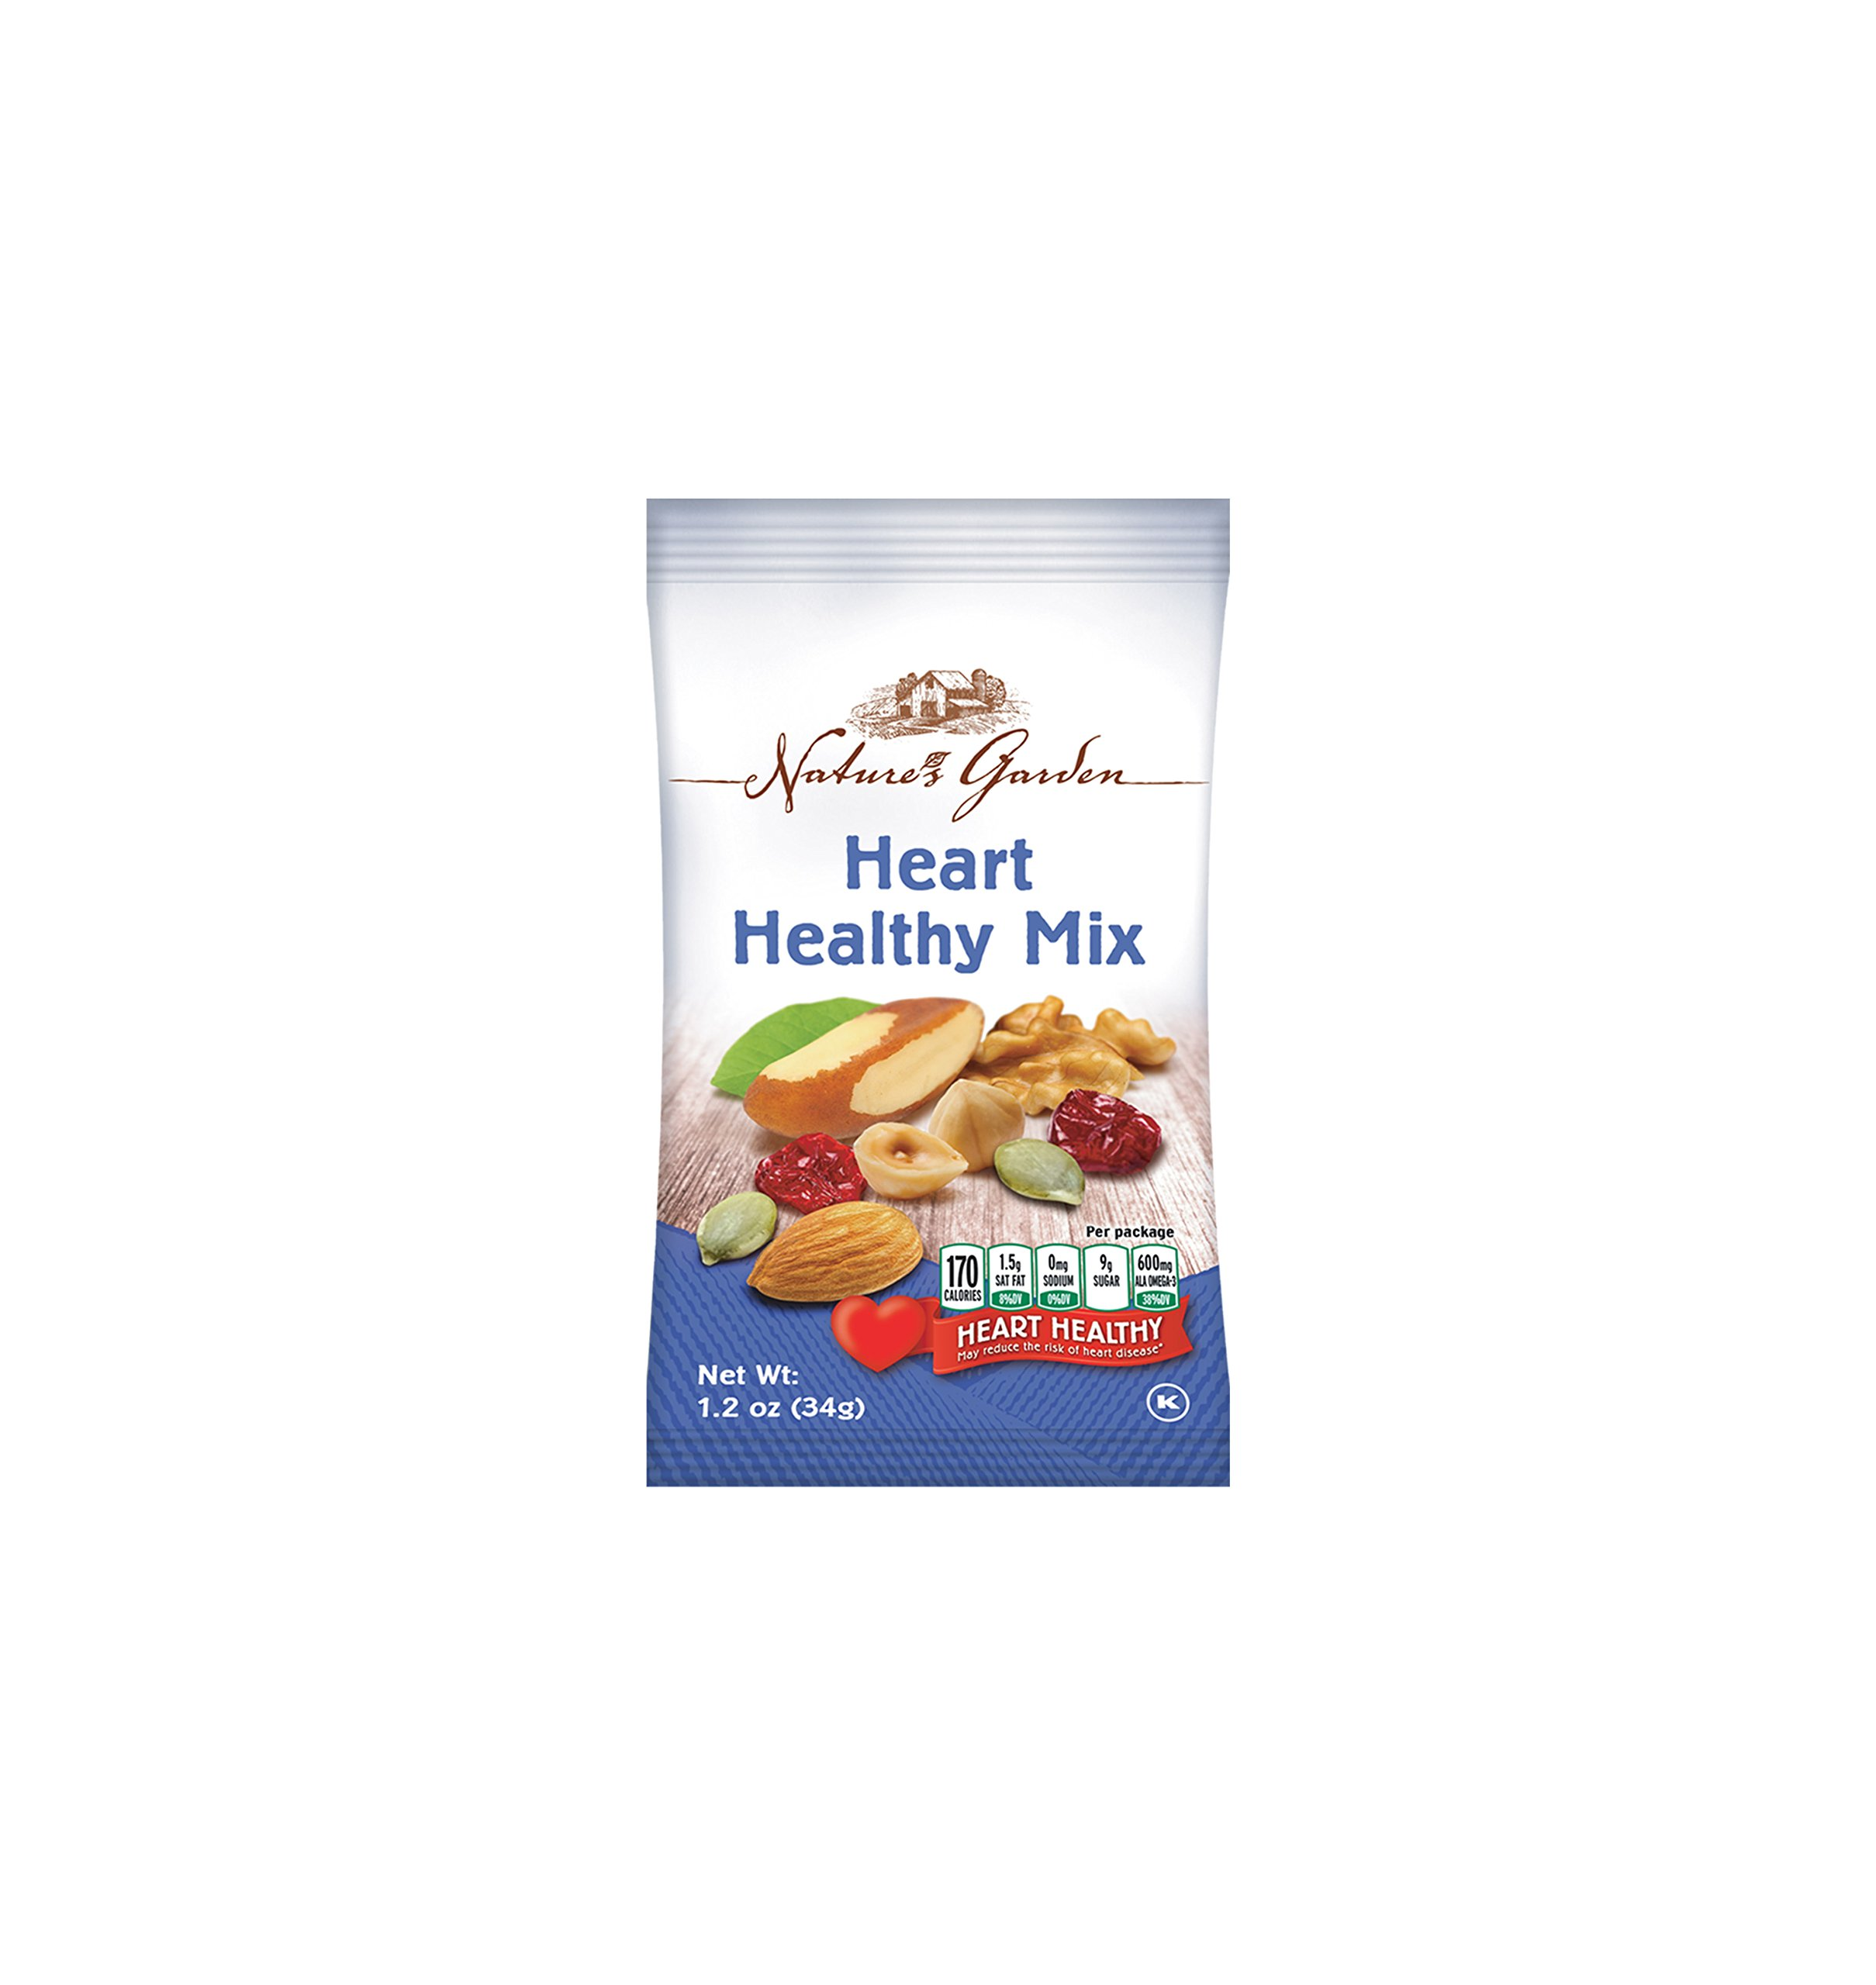 Healthy Premium Assorted Nuts and Fruits Snack Mix Sampler Variety Pack, Good for the Heart by Variety Fun (Care Package 24 Count) by Custom Varietea (Image #4)